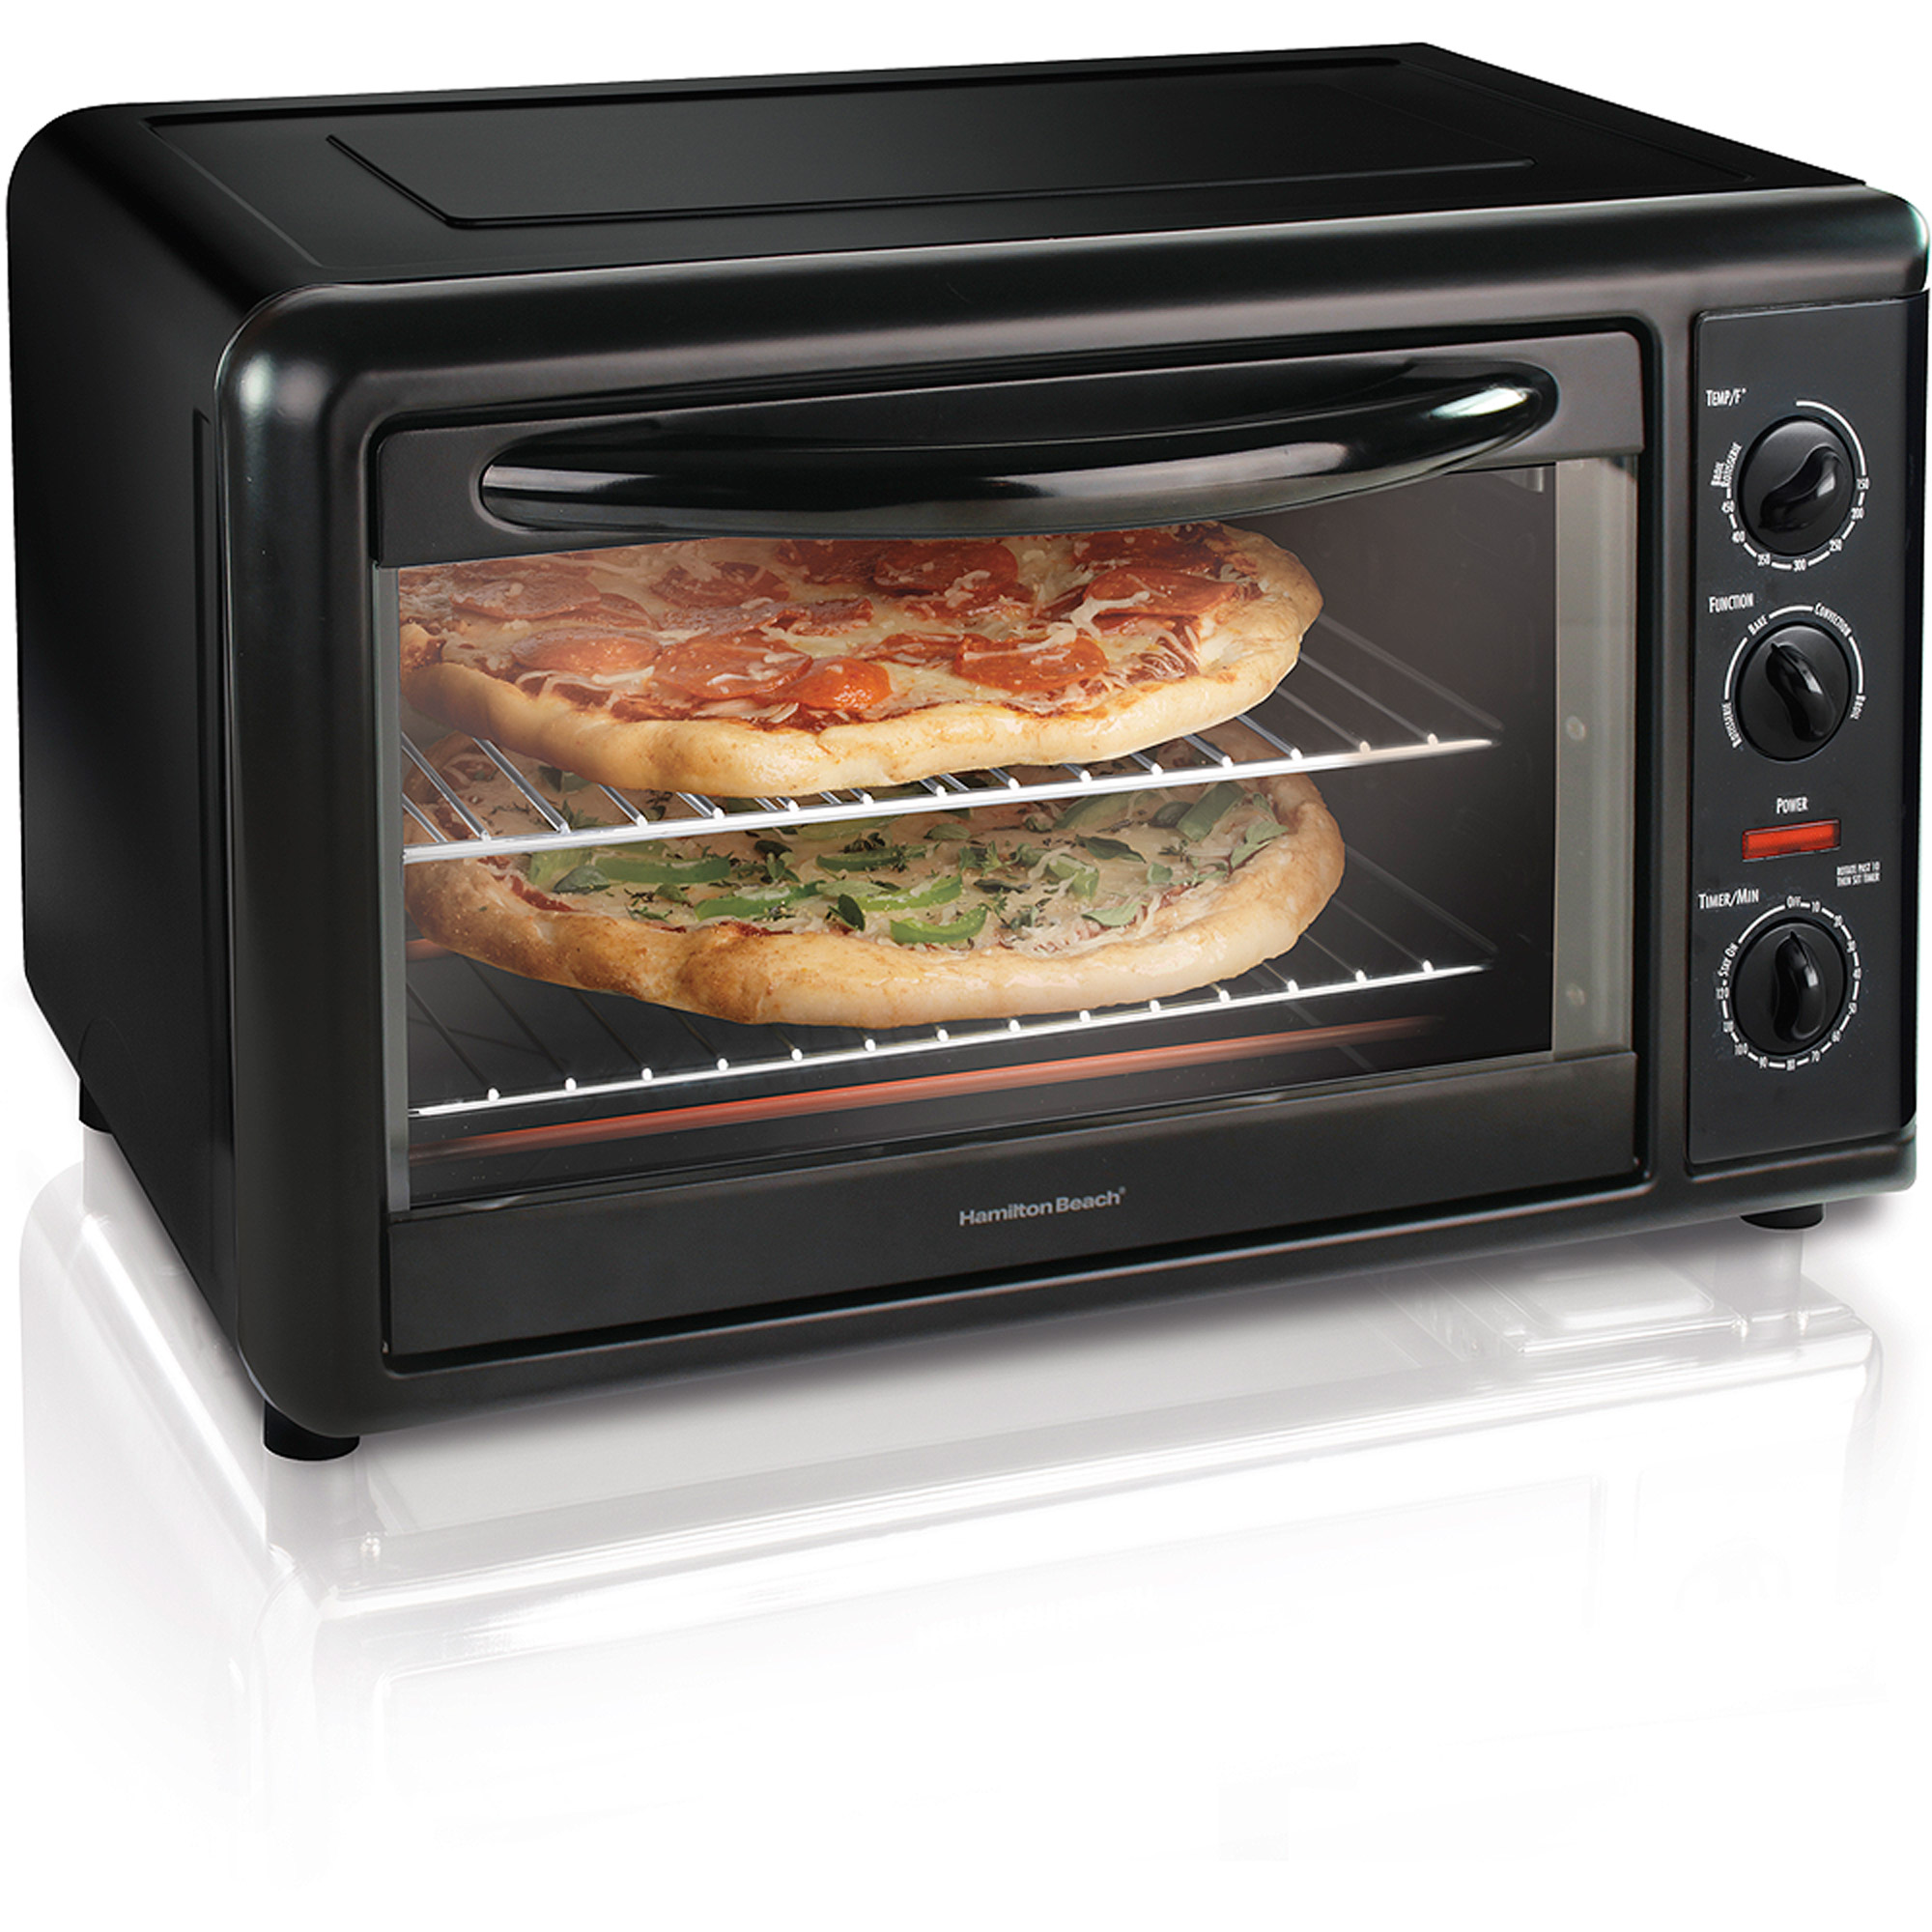 Hamilton Beach Countertop Oven With Convection Rotisserie Black Model 31101